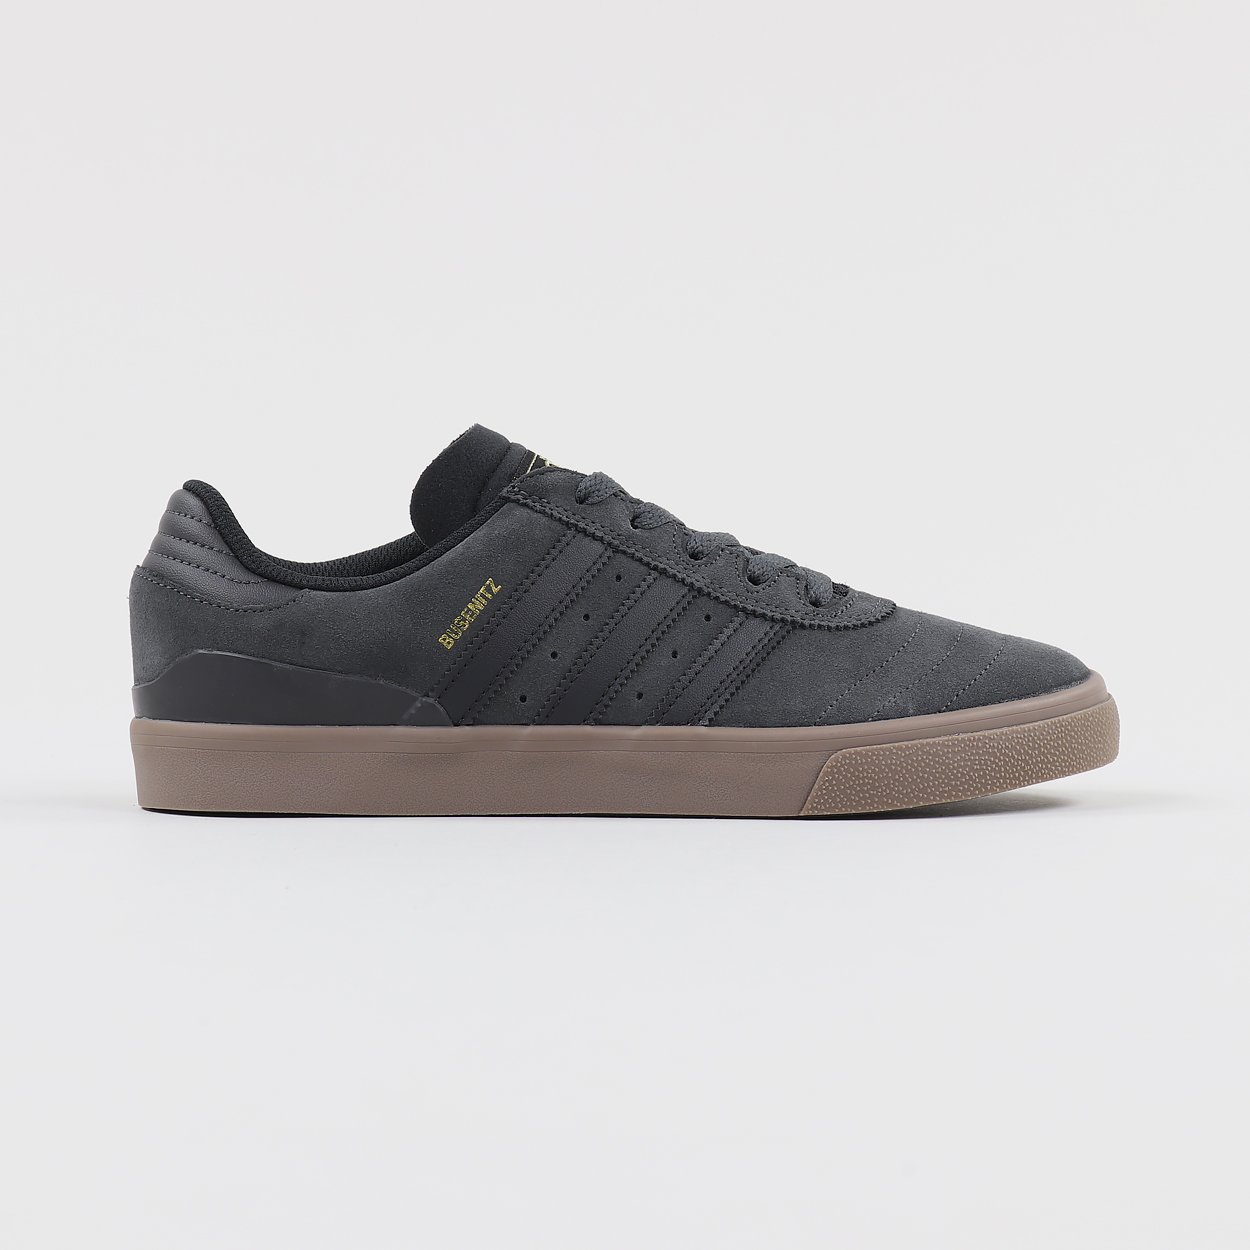 Adidas Skateboarding Mens Busenitz Vulc Shoes Grey Black Gum £69.95 85e993f42e